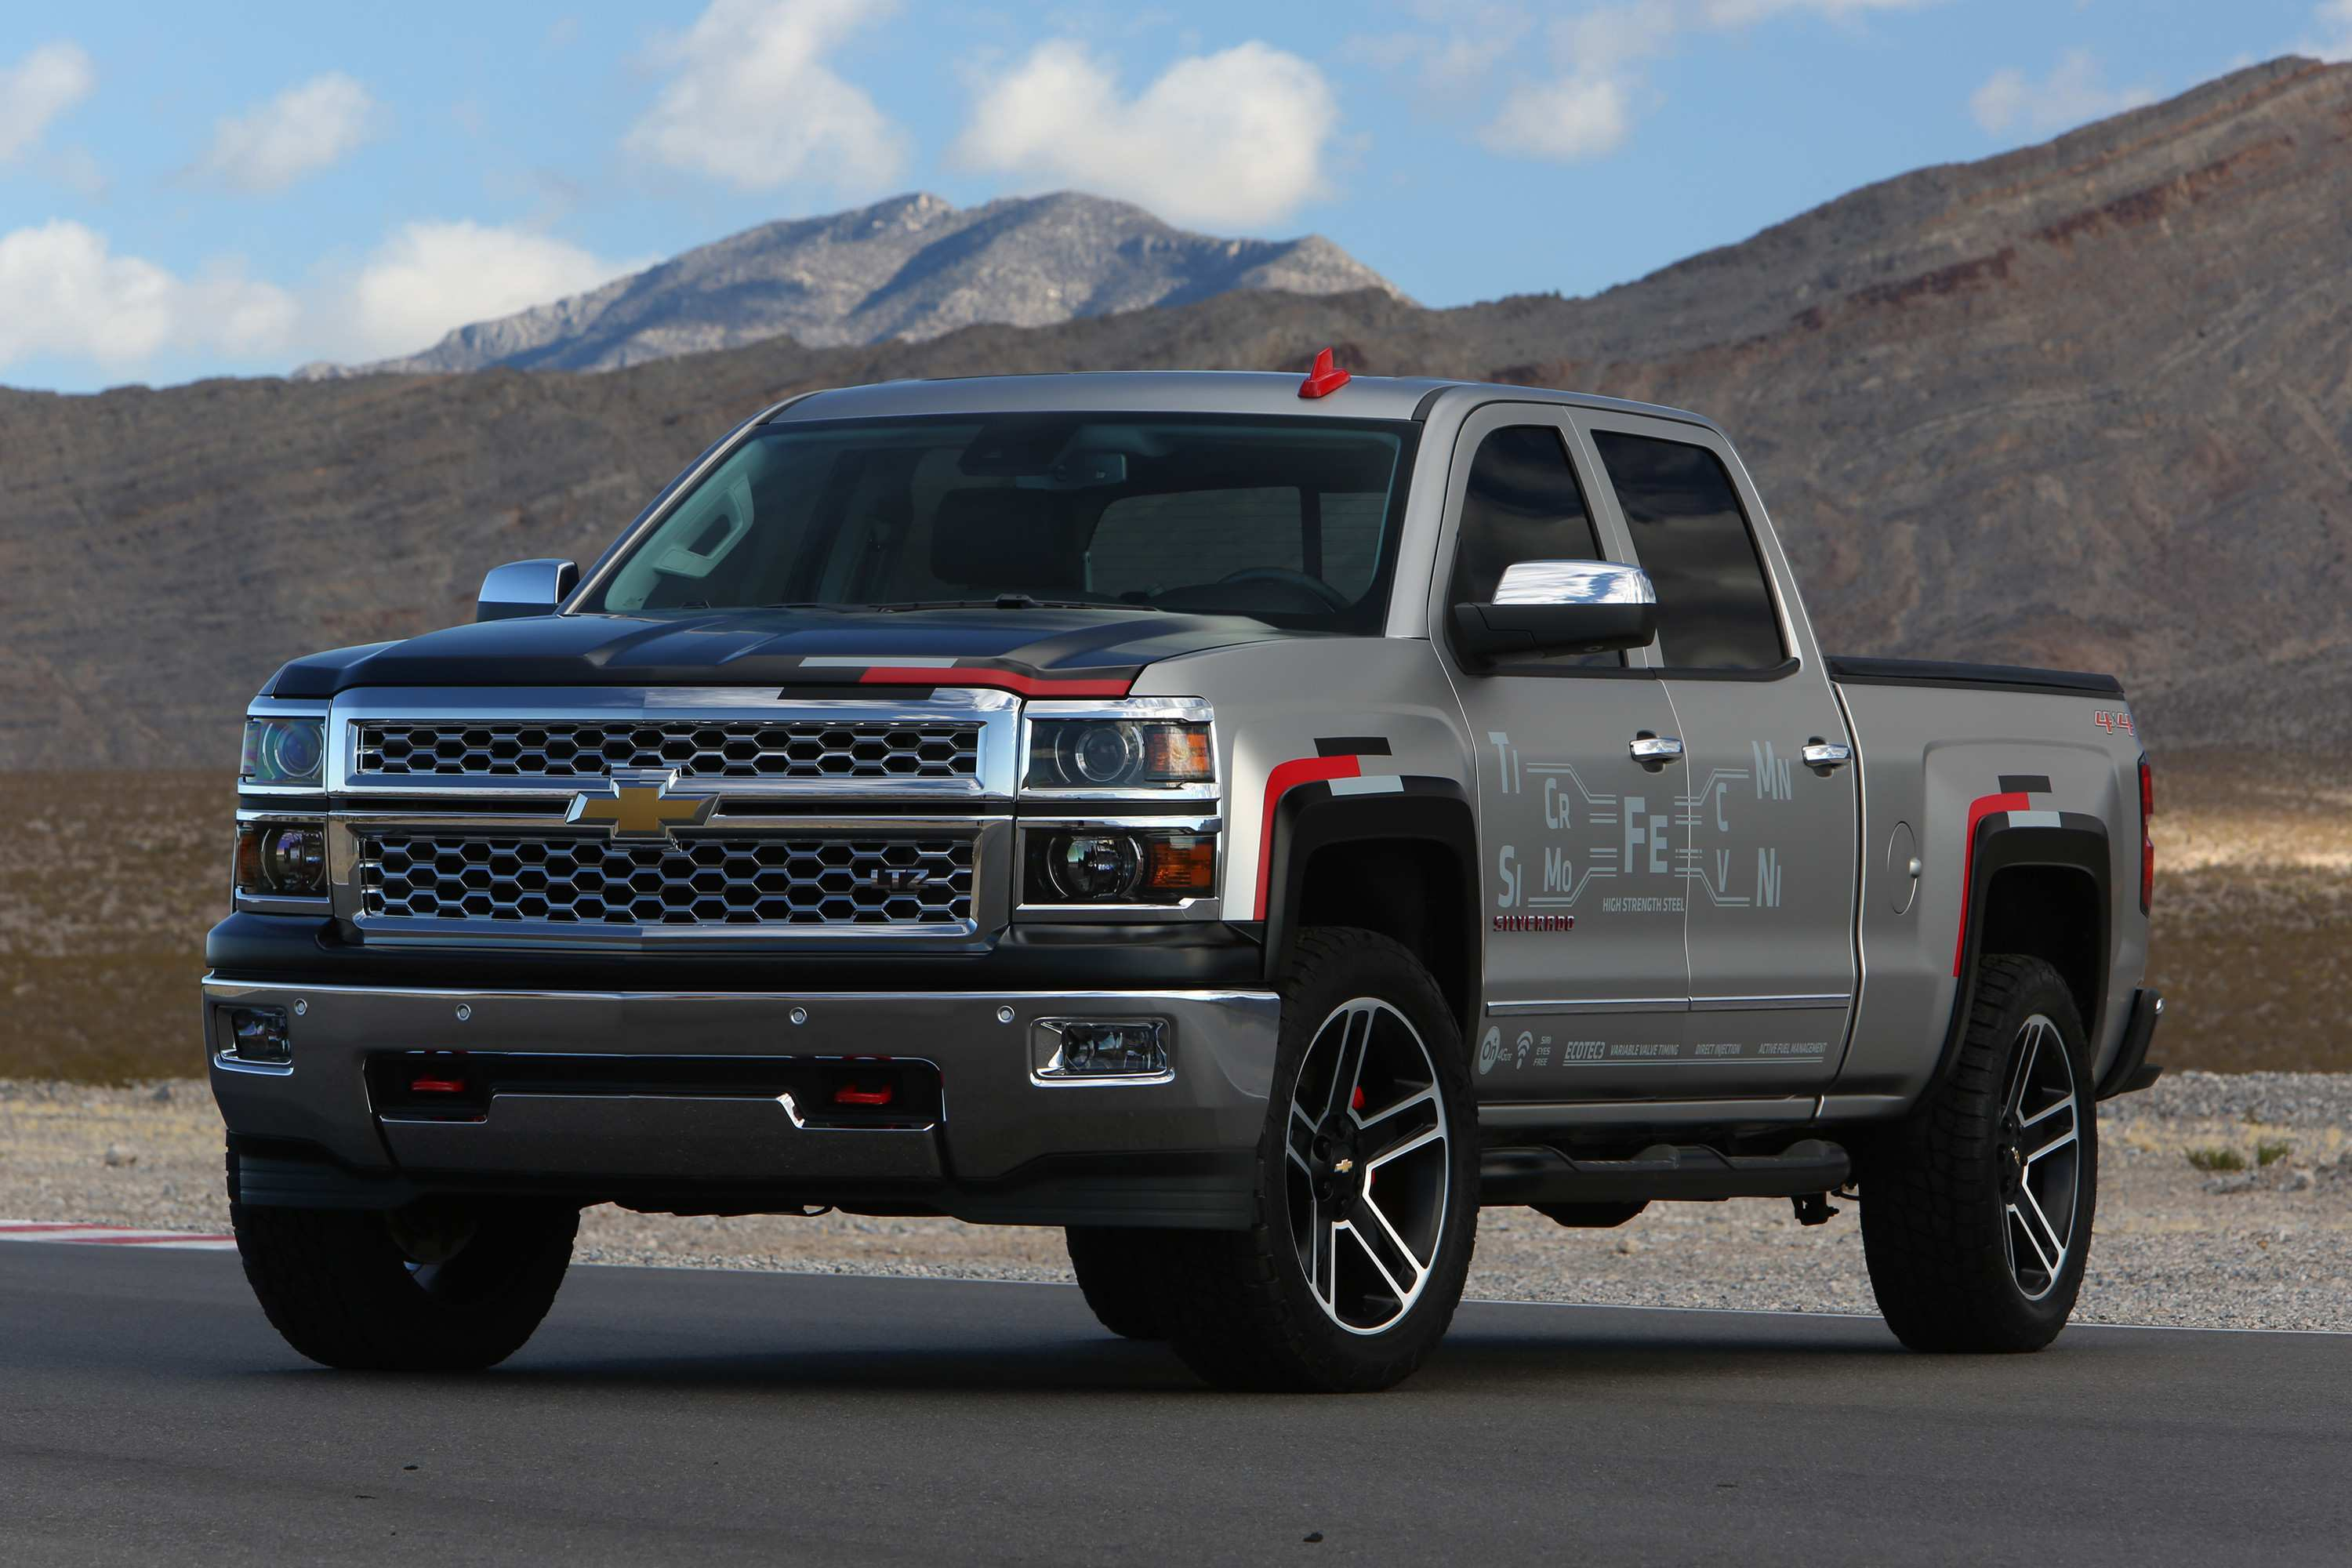 99 All New 2020 Chevy Silverado 1500 2500 Configurations for 2020 Chevy Silverado 1500 2500